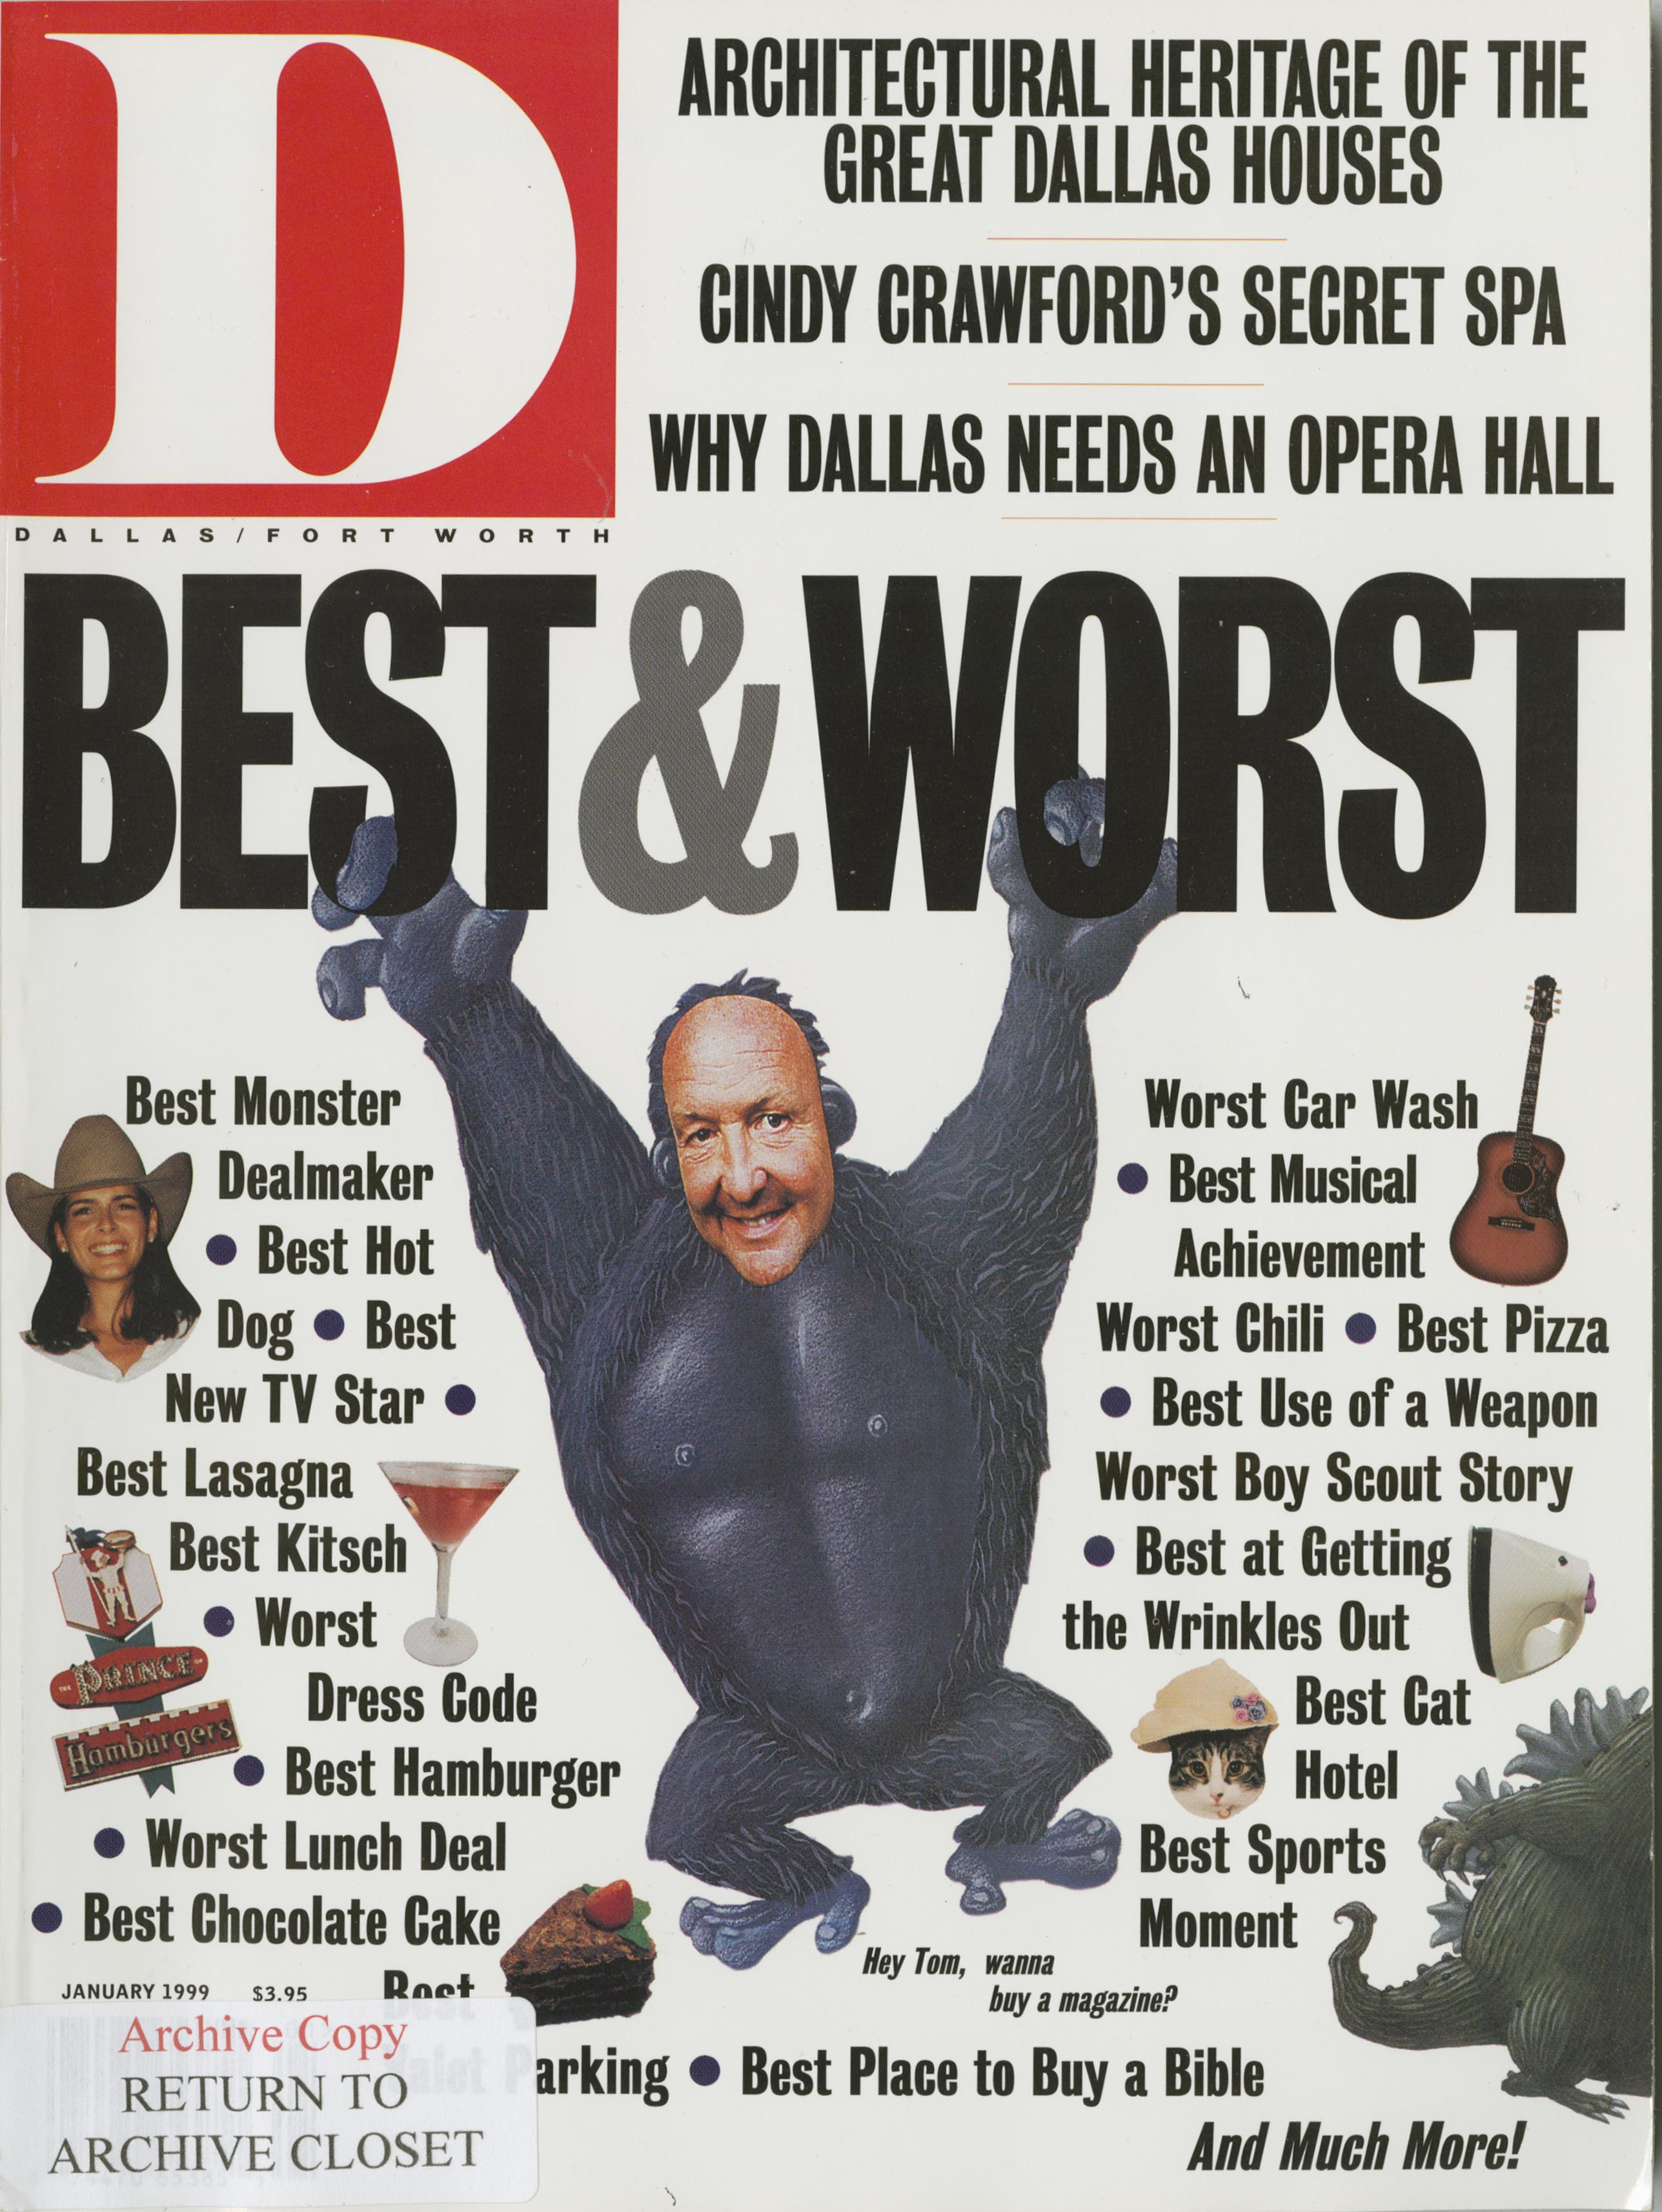 January 1999 cover